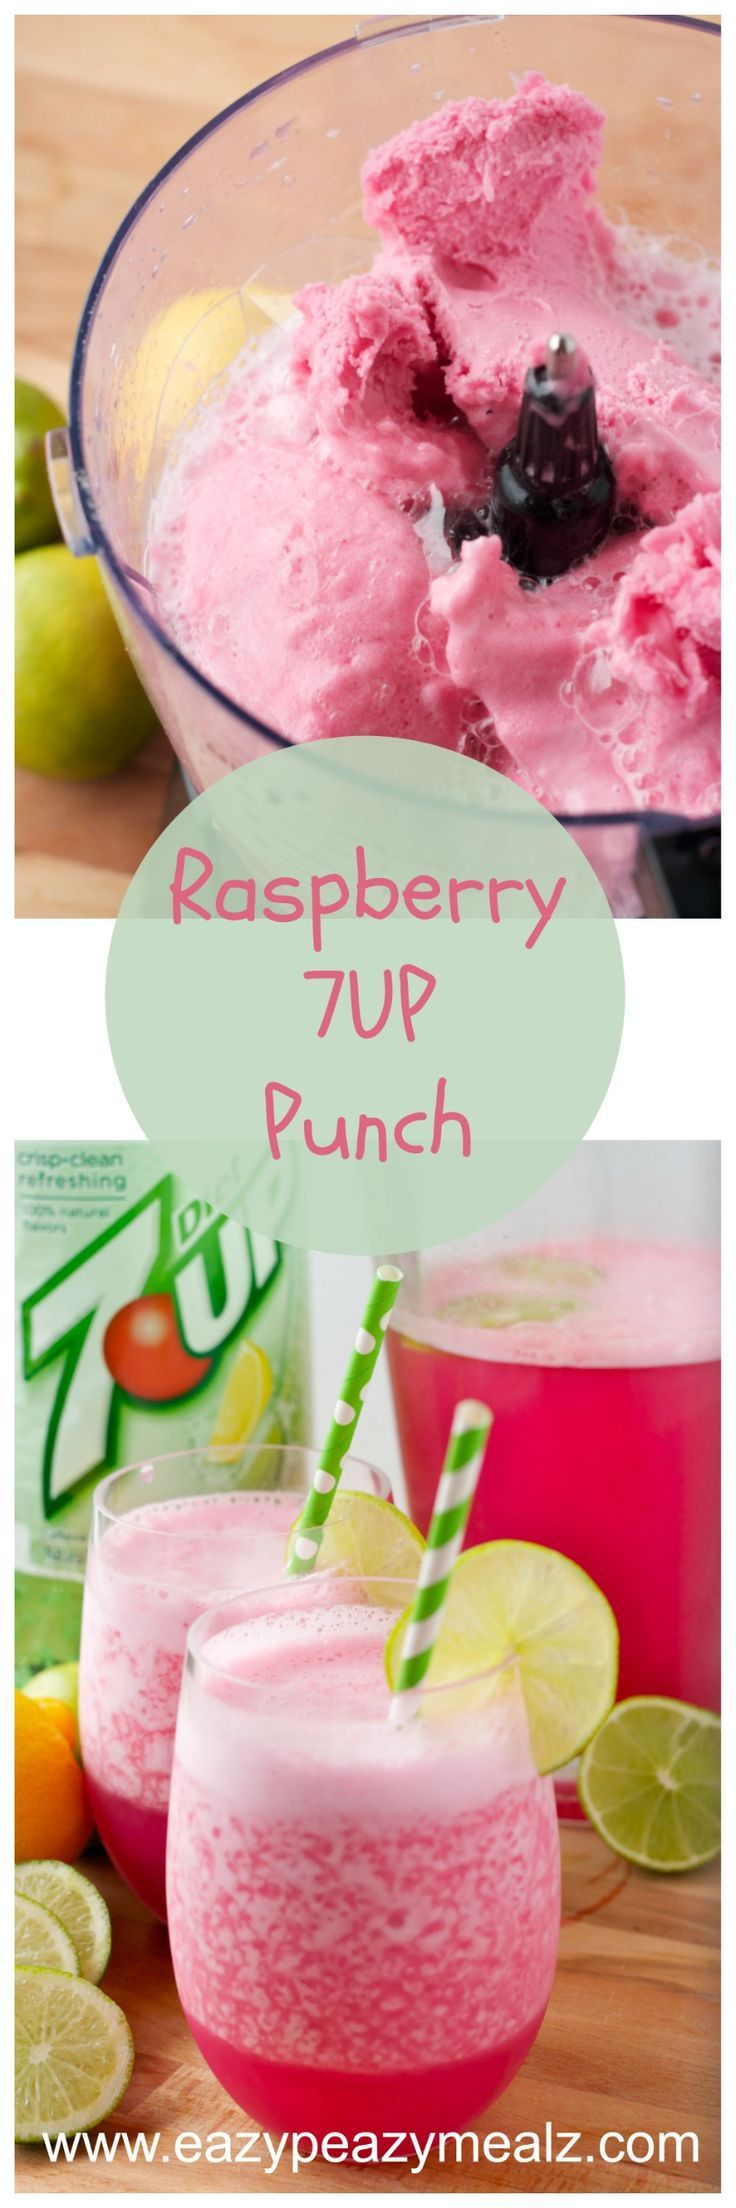 Raspberry 7 Up Punch: This easy to make punch is family friendly and perfect for a party! - Eazy Peazy Mealz